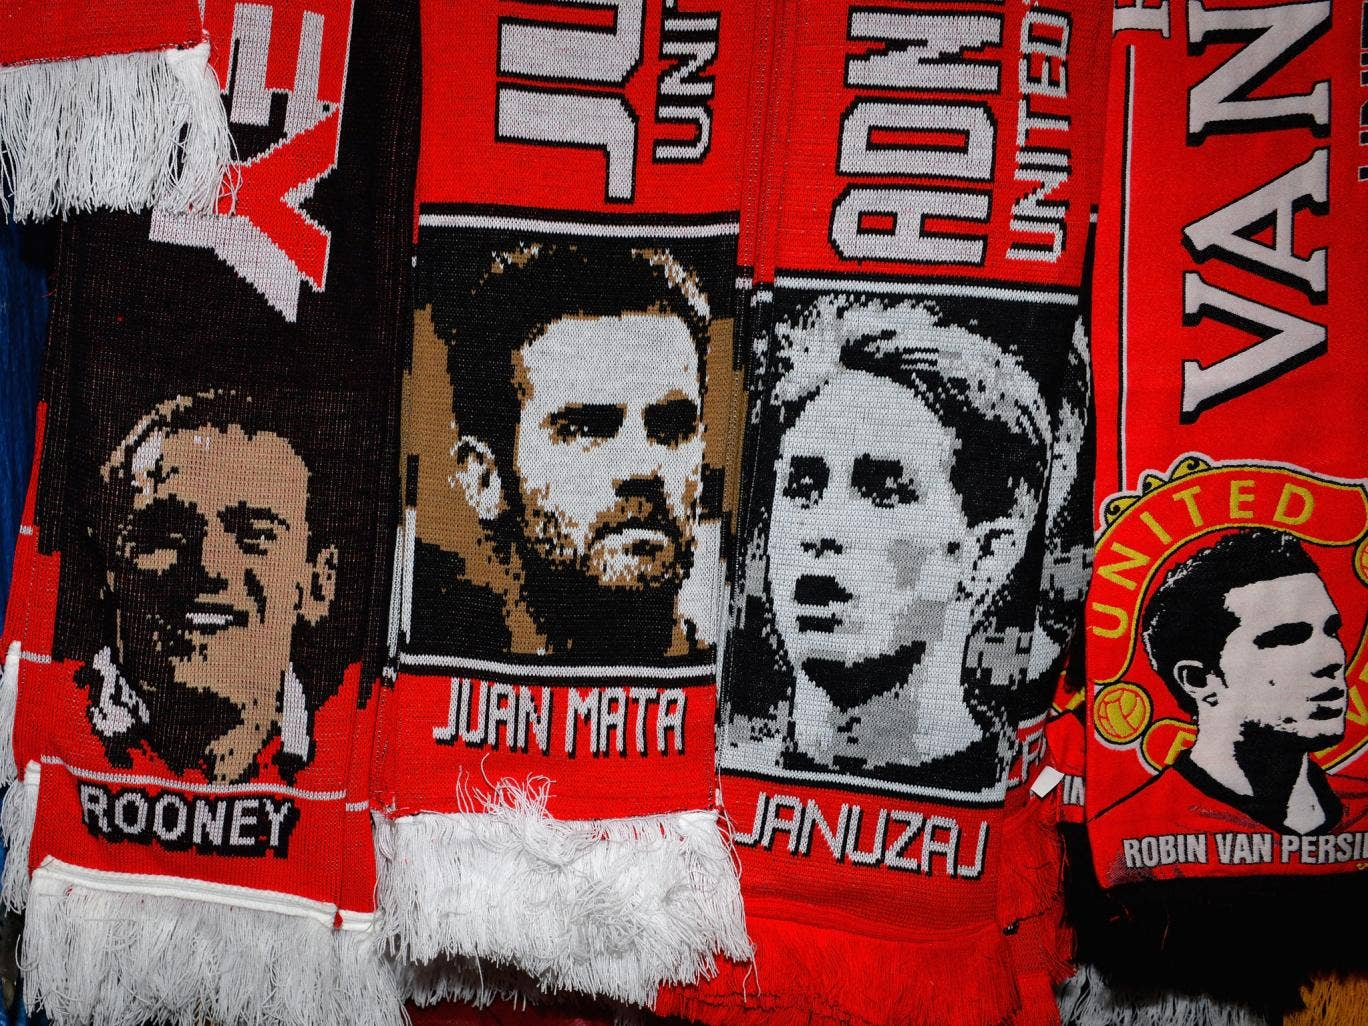 Juan Mata scarves are being sold outside Old Trafford